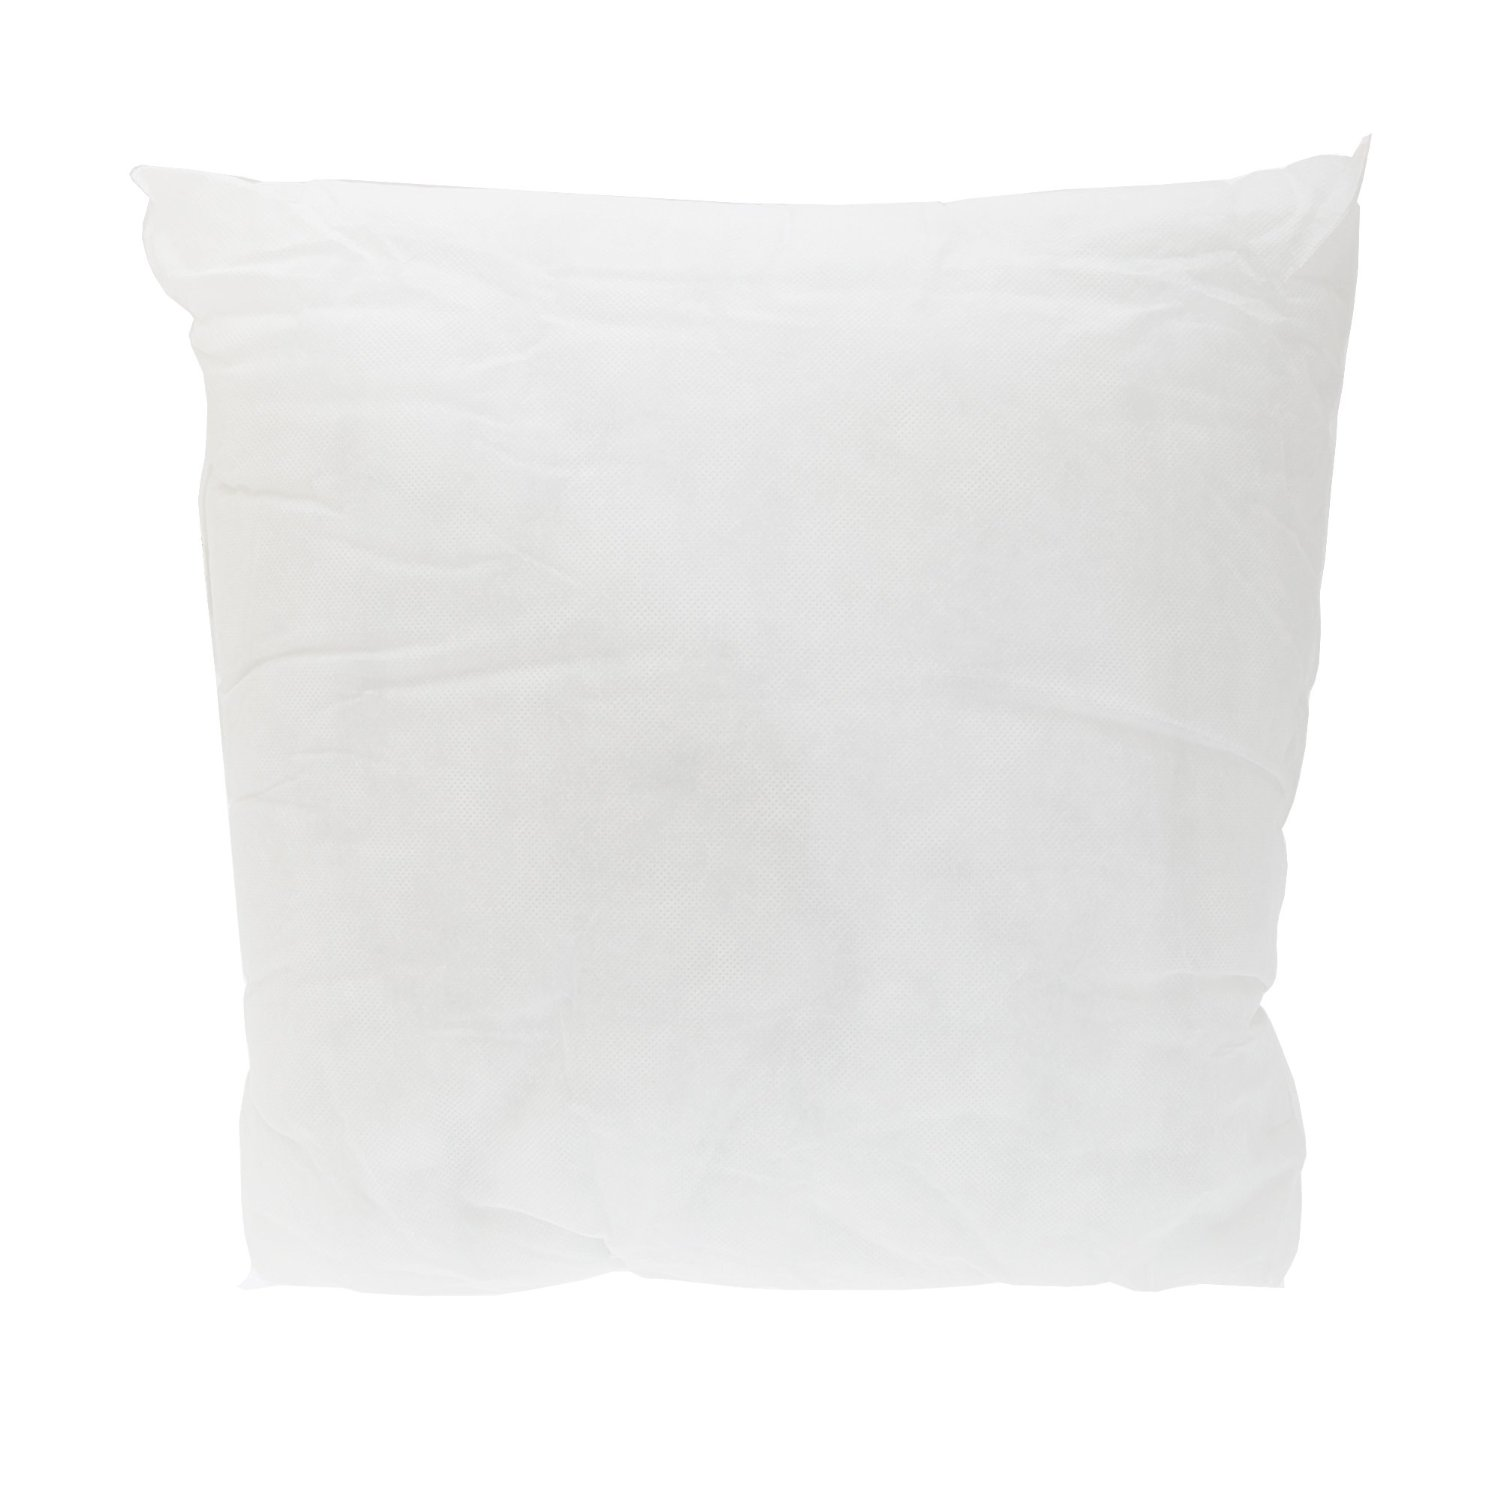 New Luxury 100/% Cotton Duck Feather /& Down Extra Filled Bolster Pillows All Size